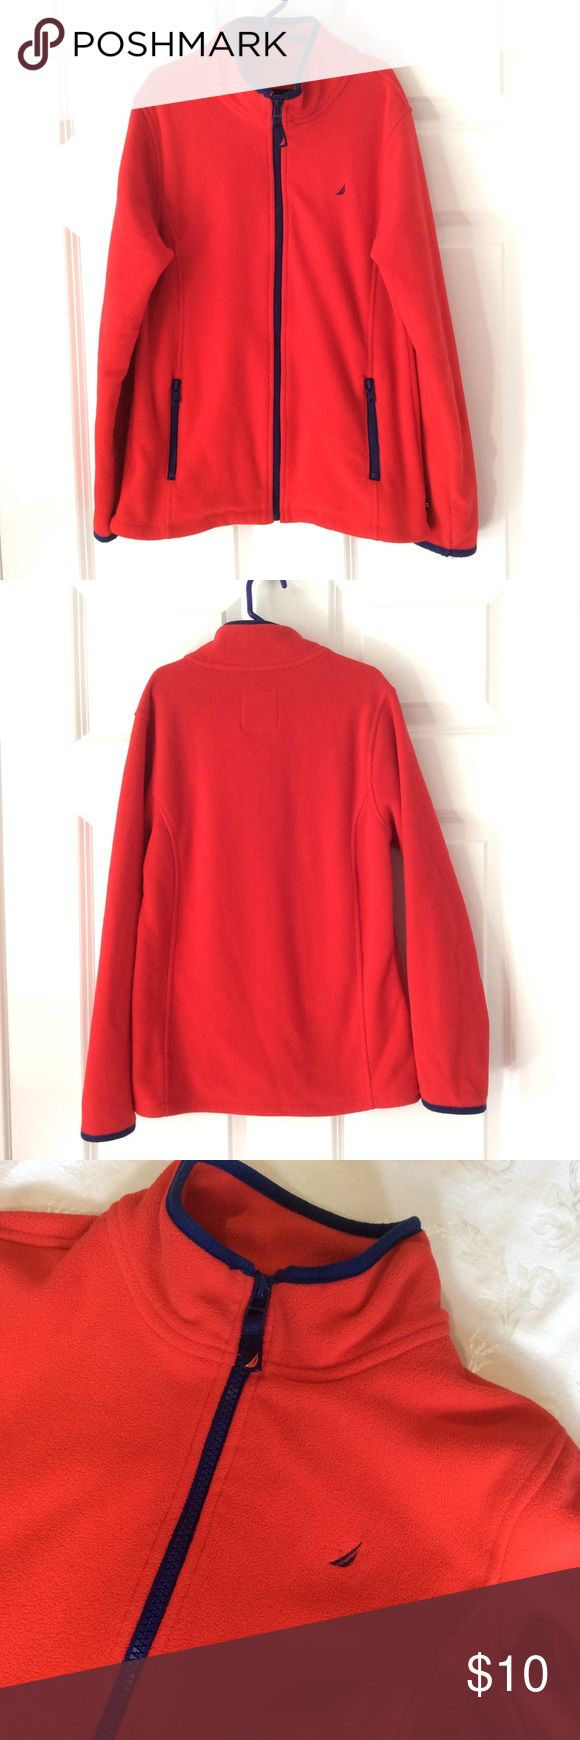 GIRLS Nautica red zip up fleece GIRLS Nautica red zip up fleece with blue trim. Size 12. 100% polyester.  Pre loved, gently worn.  Pre loved, gently worn condition. Nautica Shirts & Tops Sweatshirts & Hoodies